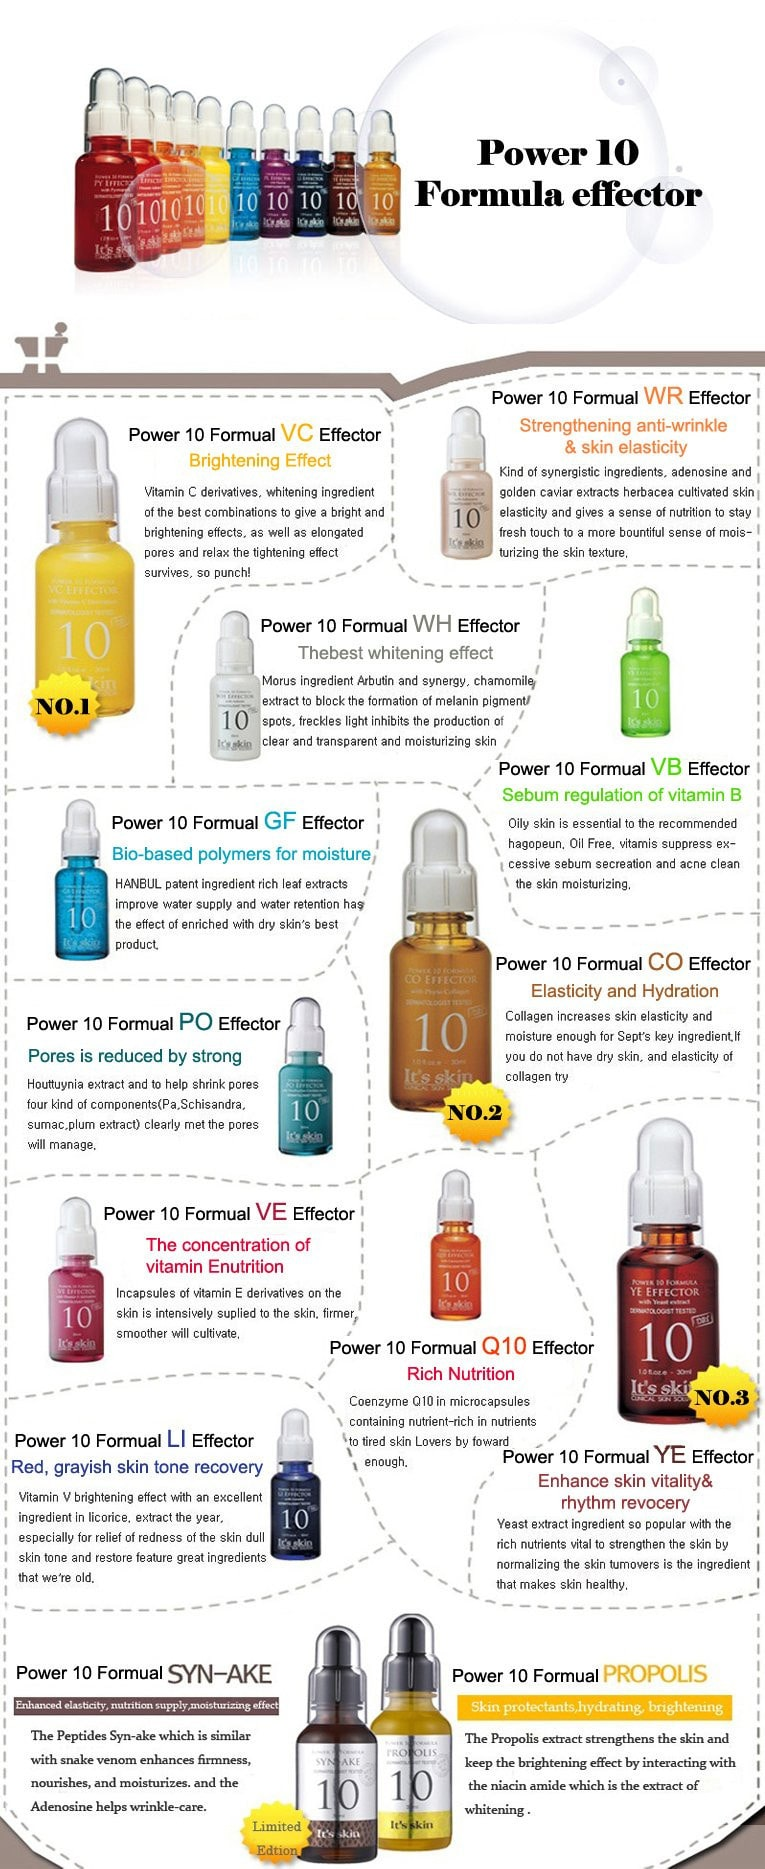 Its Skin  Power 10 Formula VC Effector (30ml)